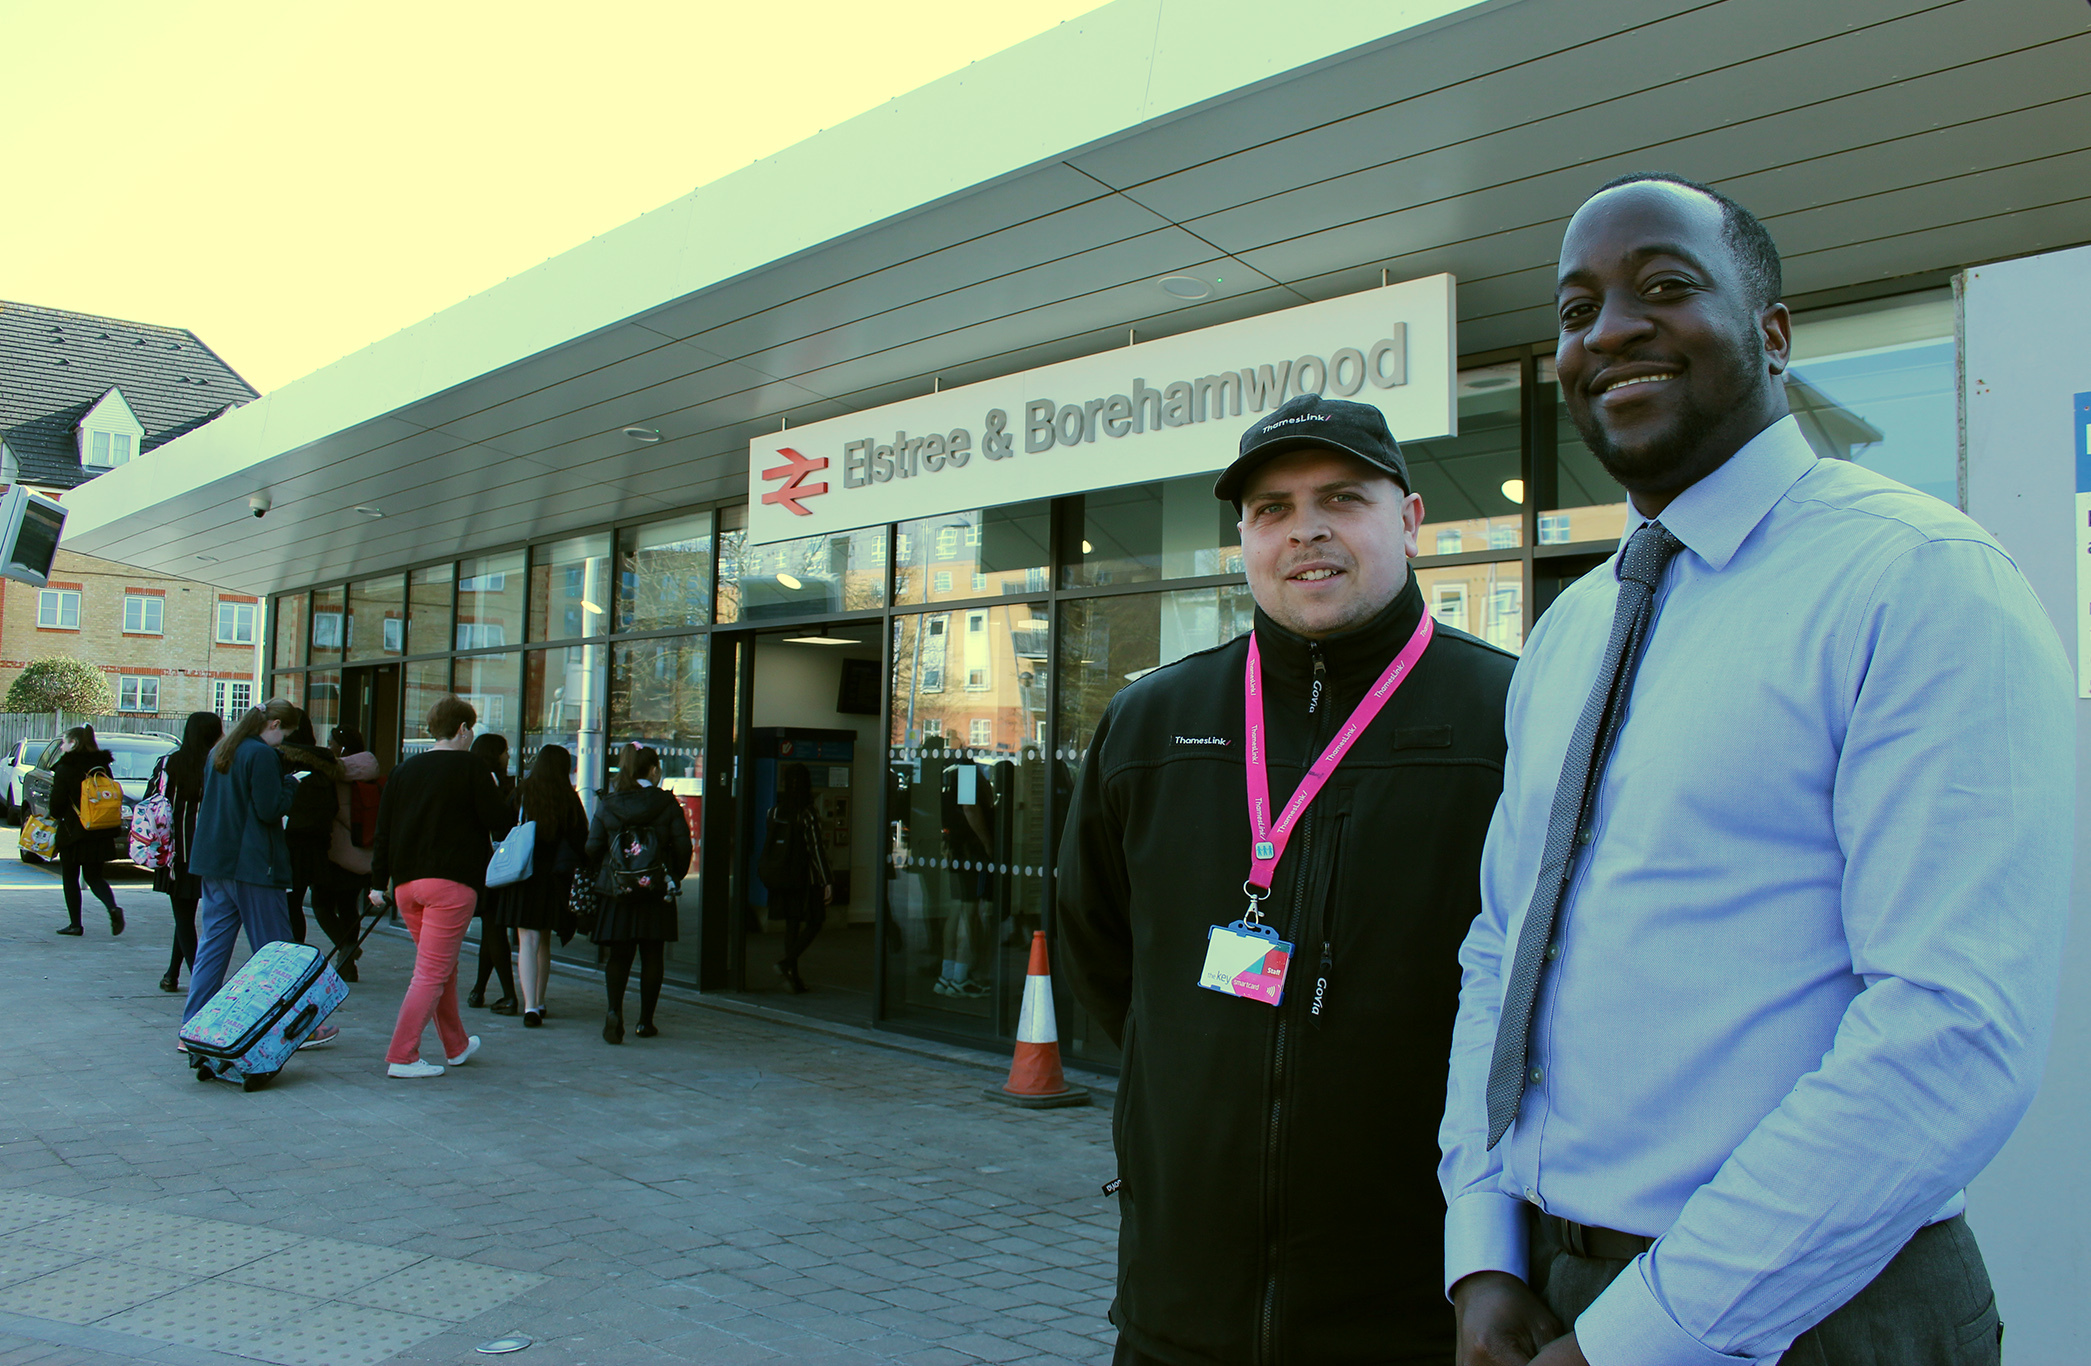 Station manager Marc Asamoah (right) and revenue control officer Mike Tyler outside the newly renovated Elstree & Borehamwood train station